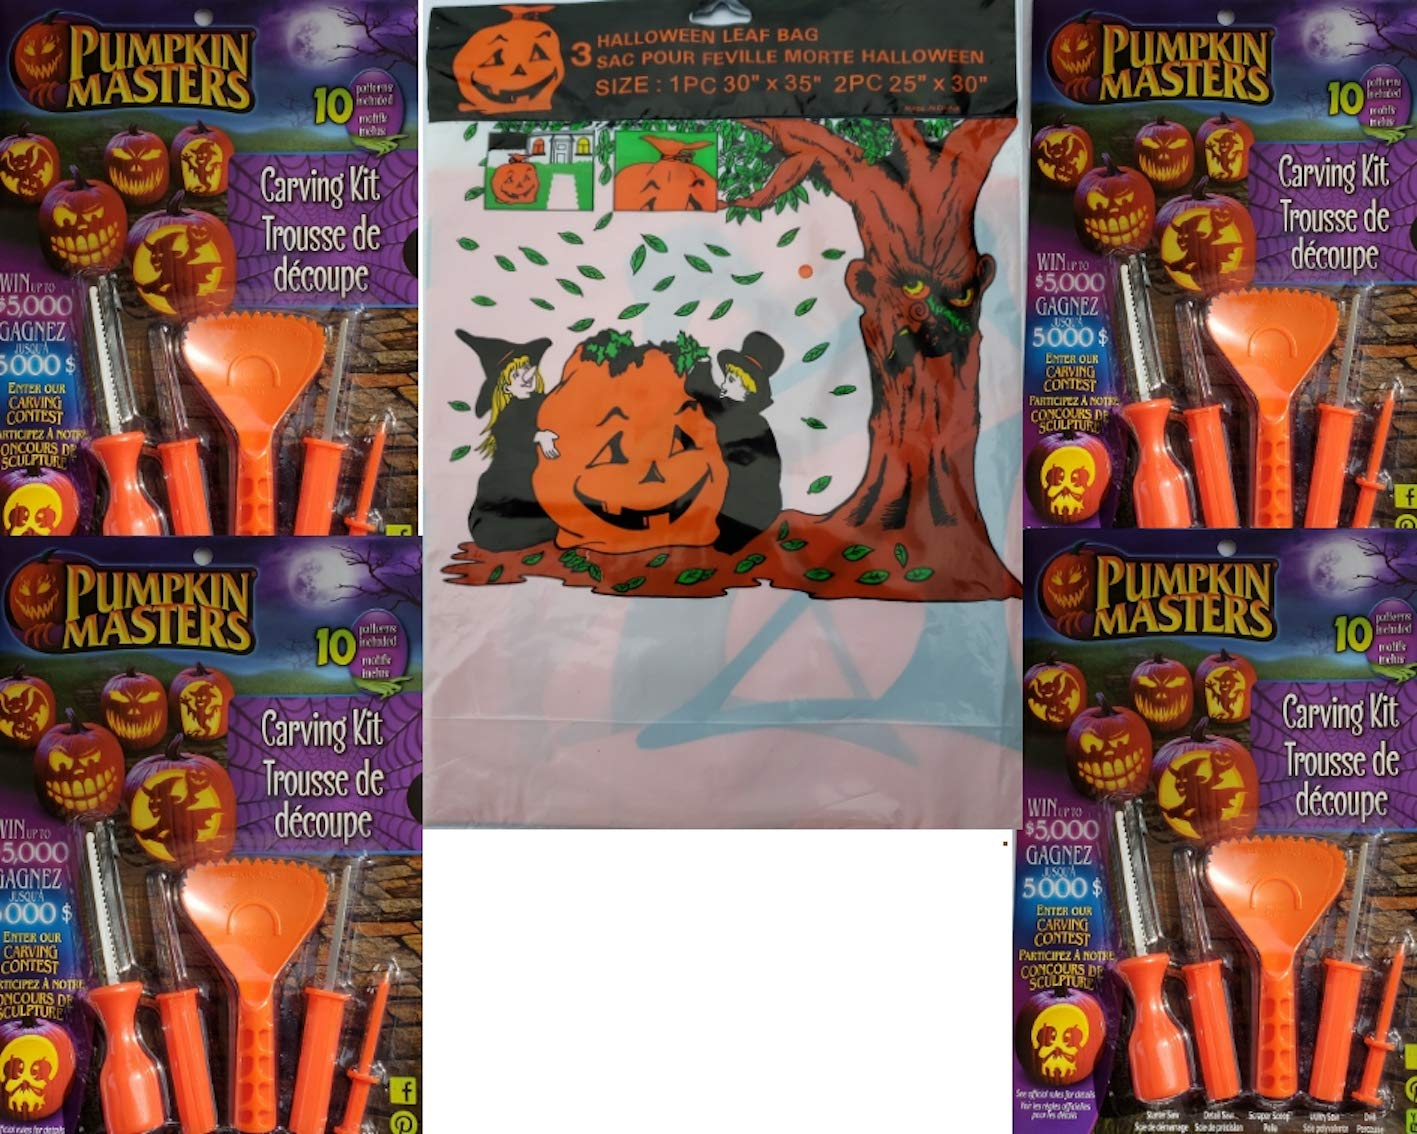 Pumpkin Masters Pumpkin Carving Kit Bundle of 5 Items Including 4 Carving Kits and 1 Package of 3 Halloween Leaf Bags